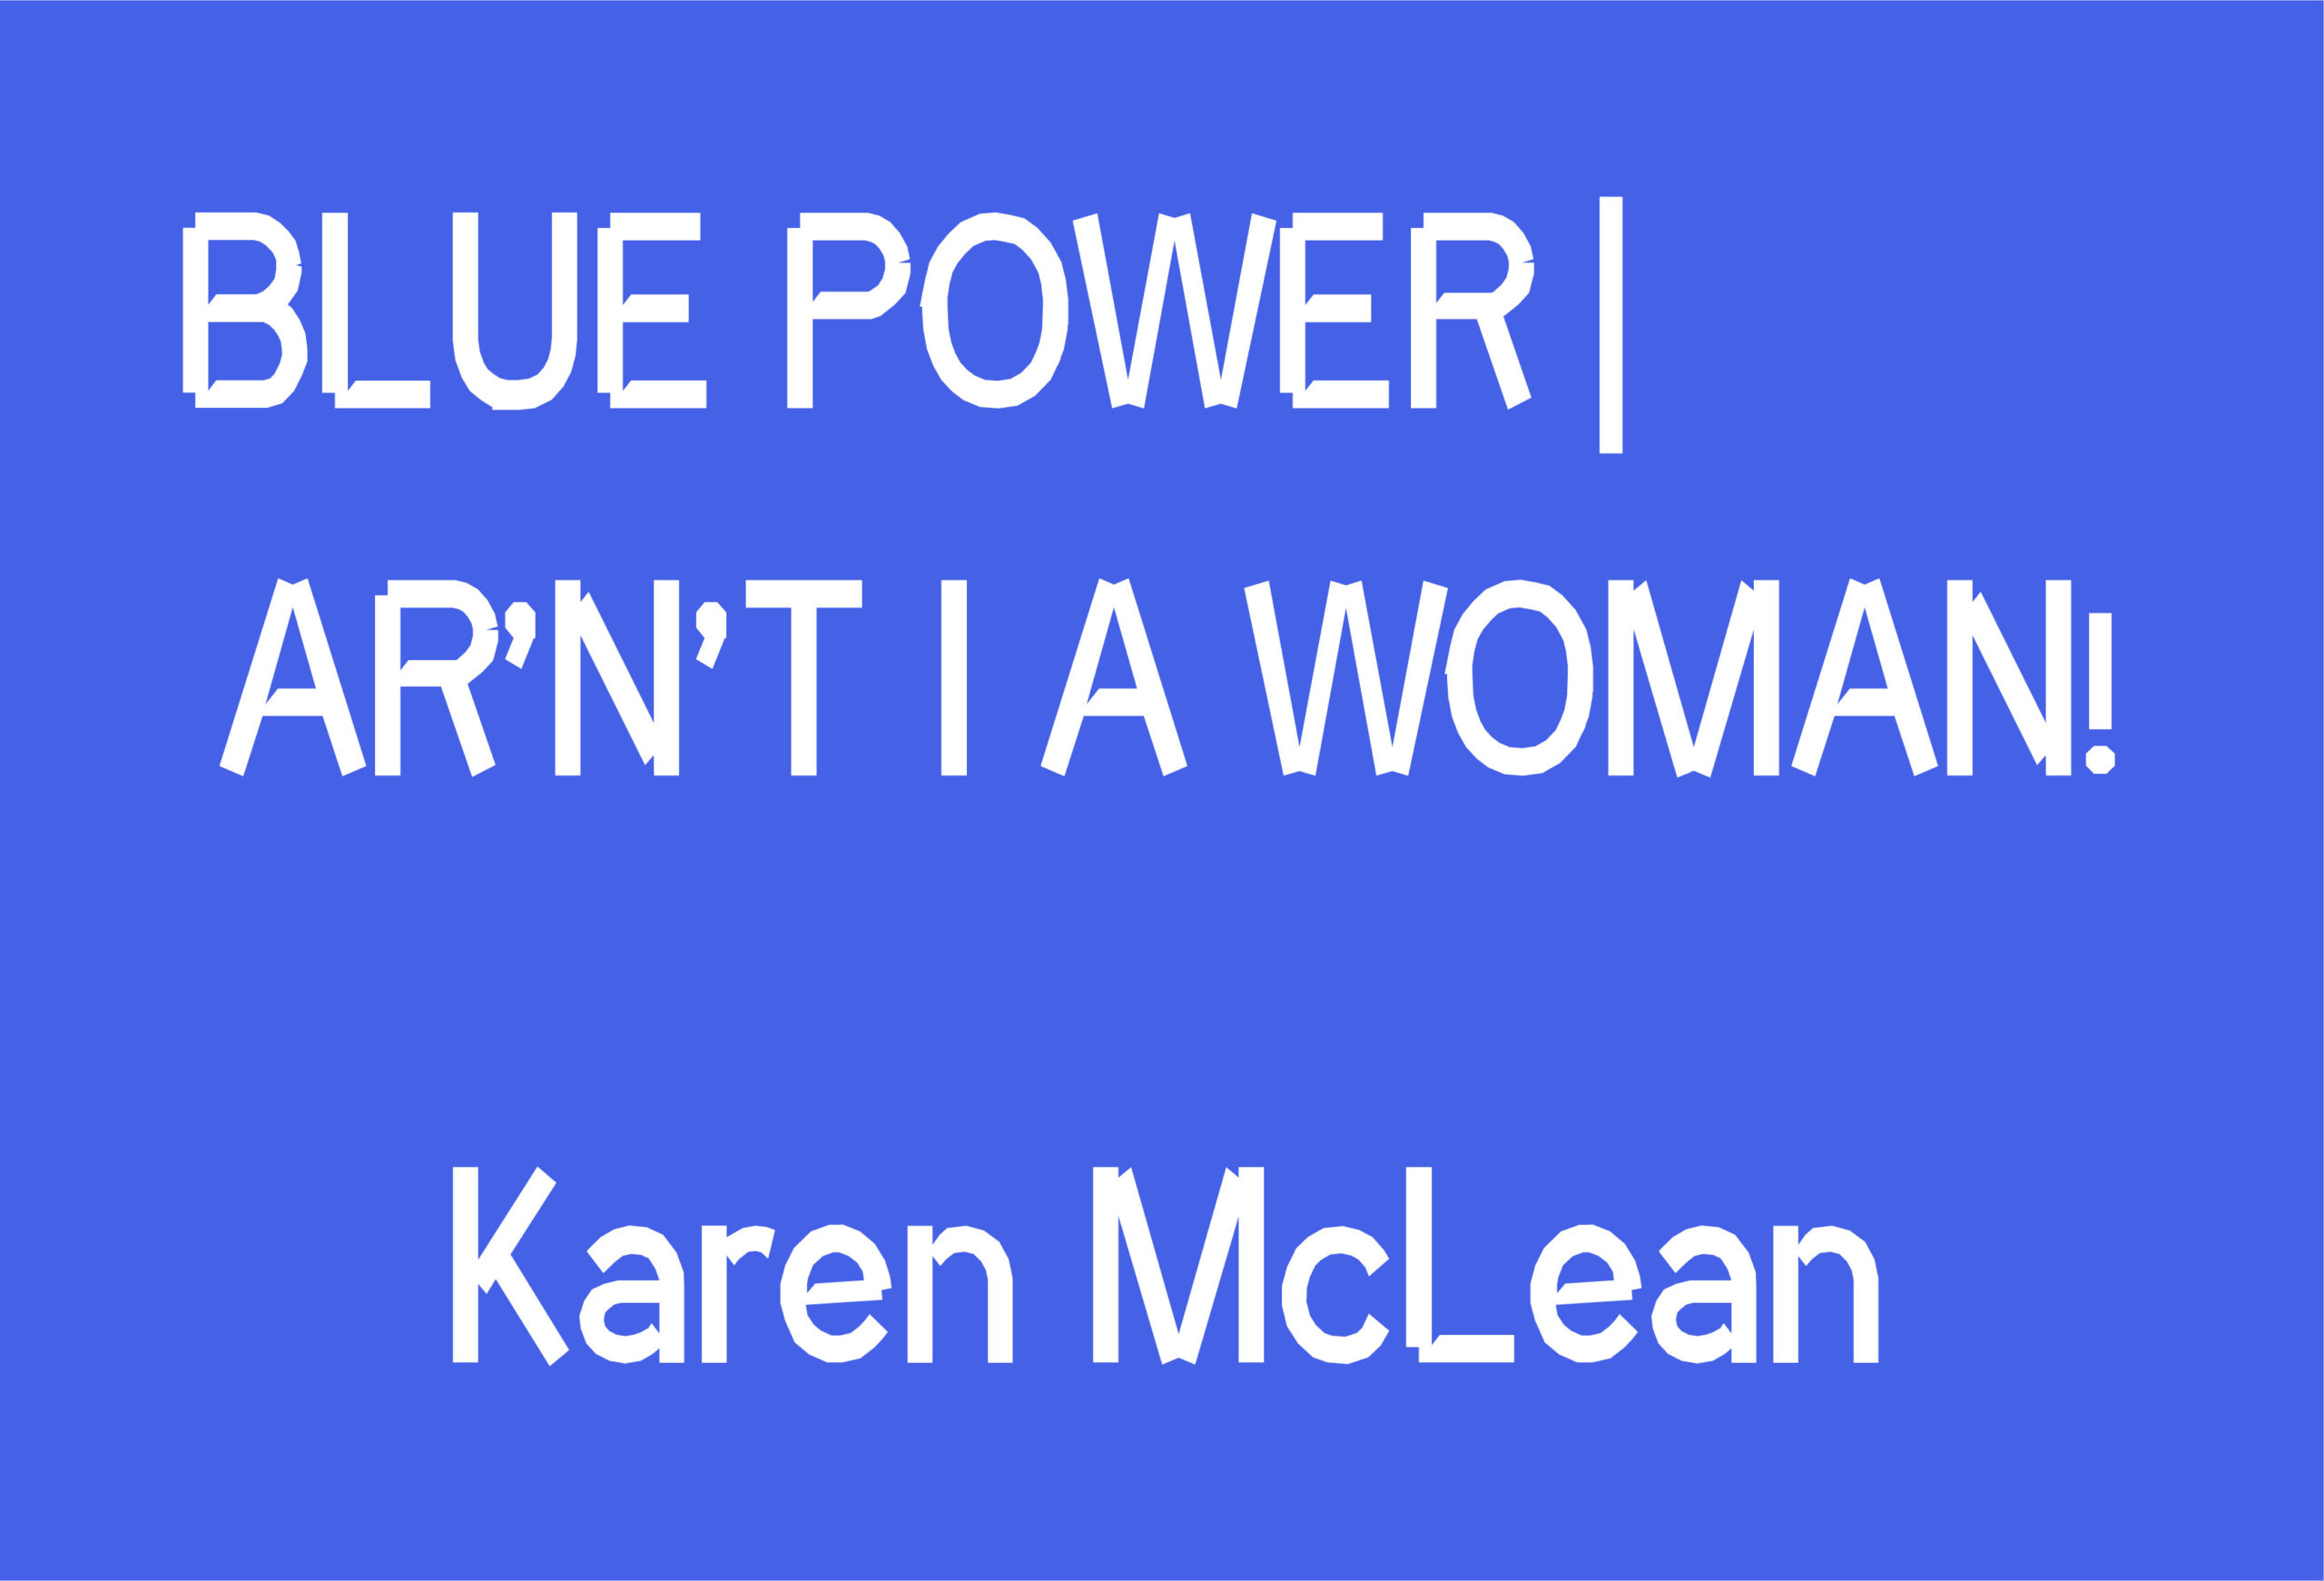 BLUE POWER // AR'N'T I A WOMAN!